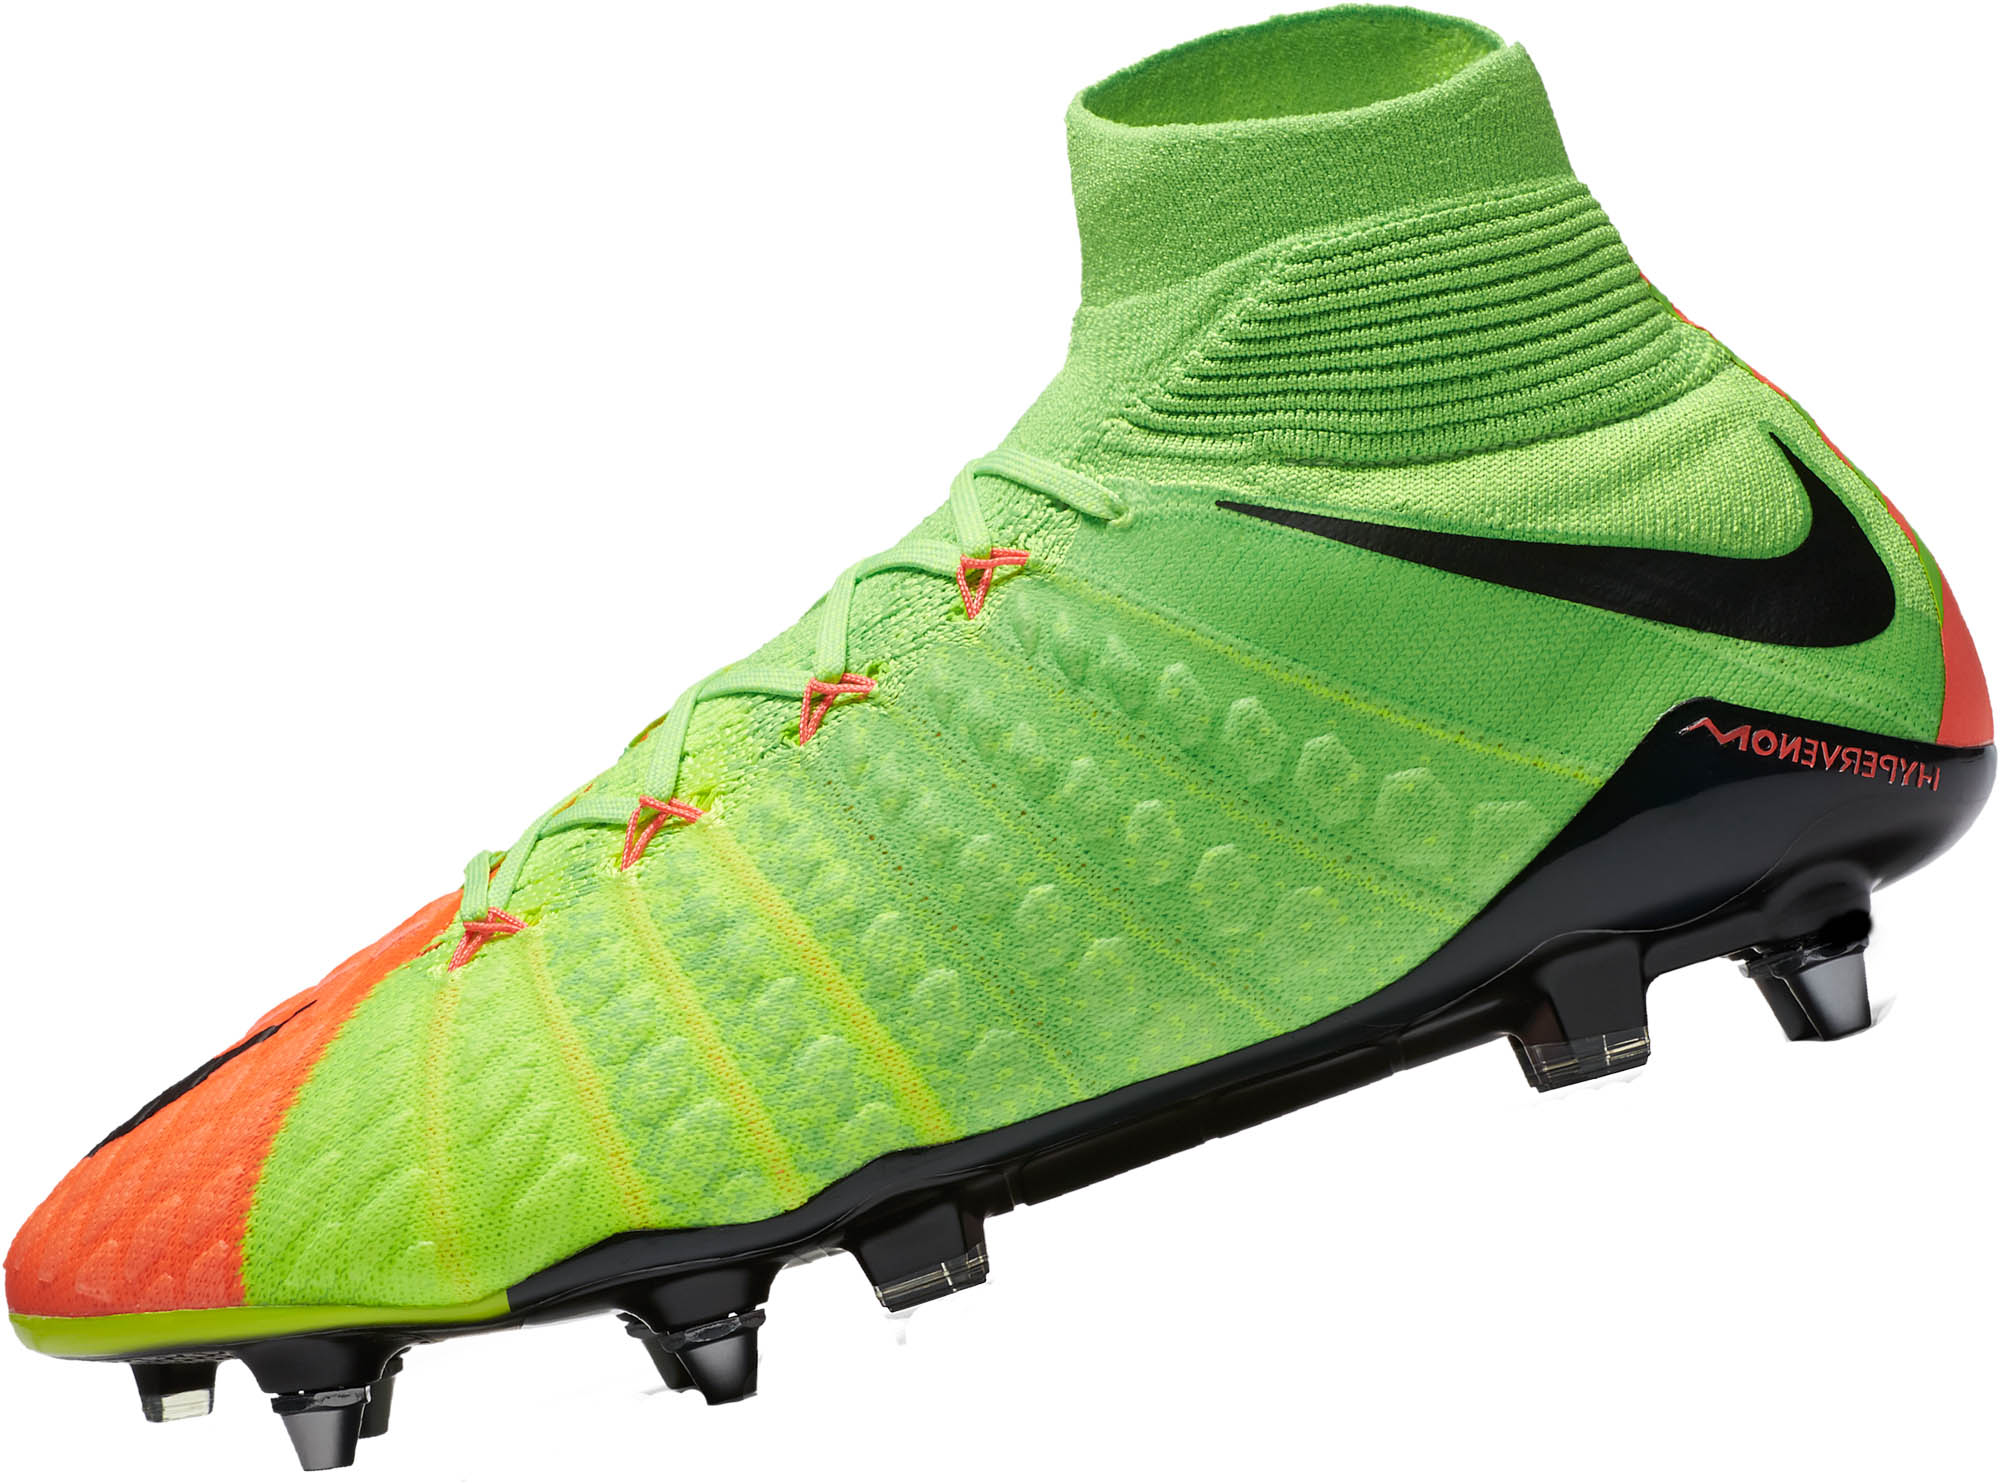 another chance release date: the cheapest Nike Hypervenom Phantom DF III SG-Pro Soccer Cleats